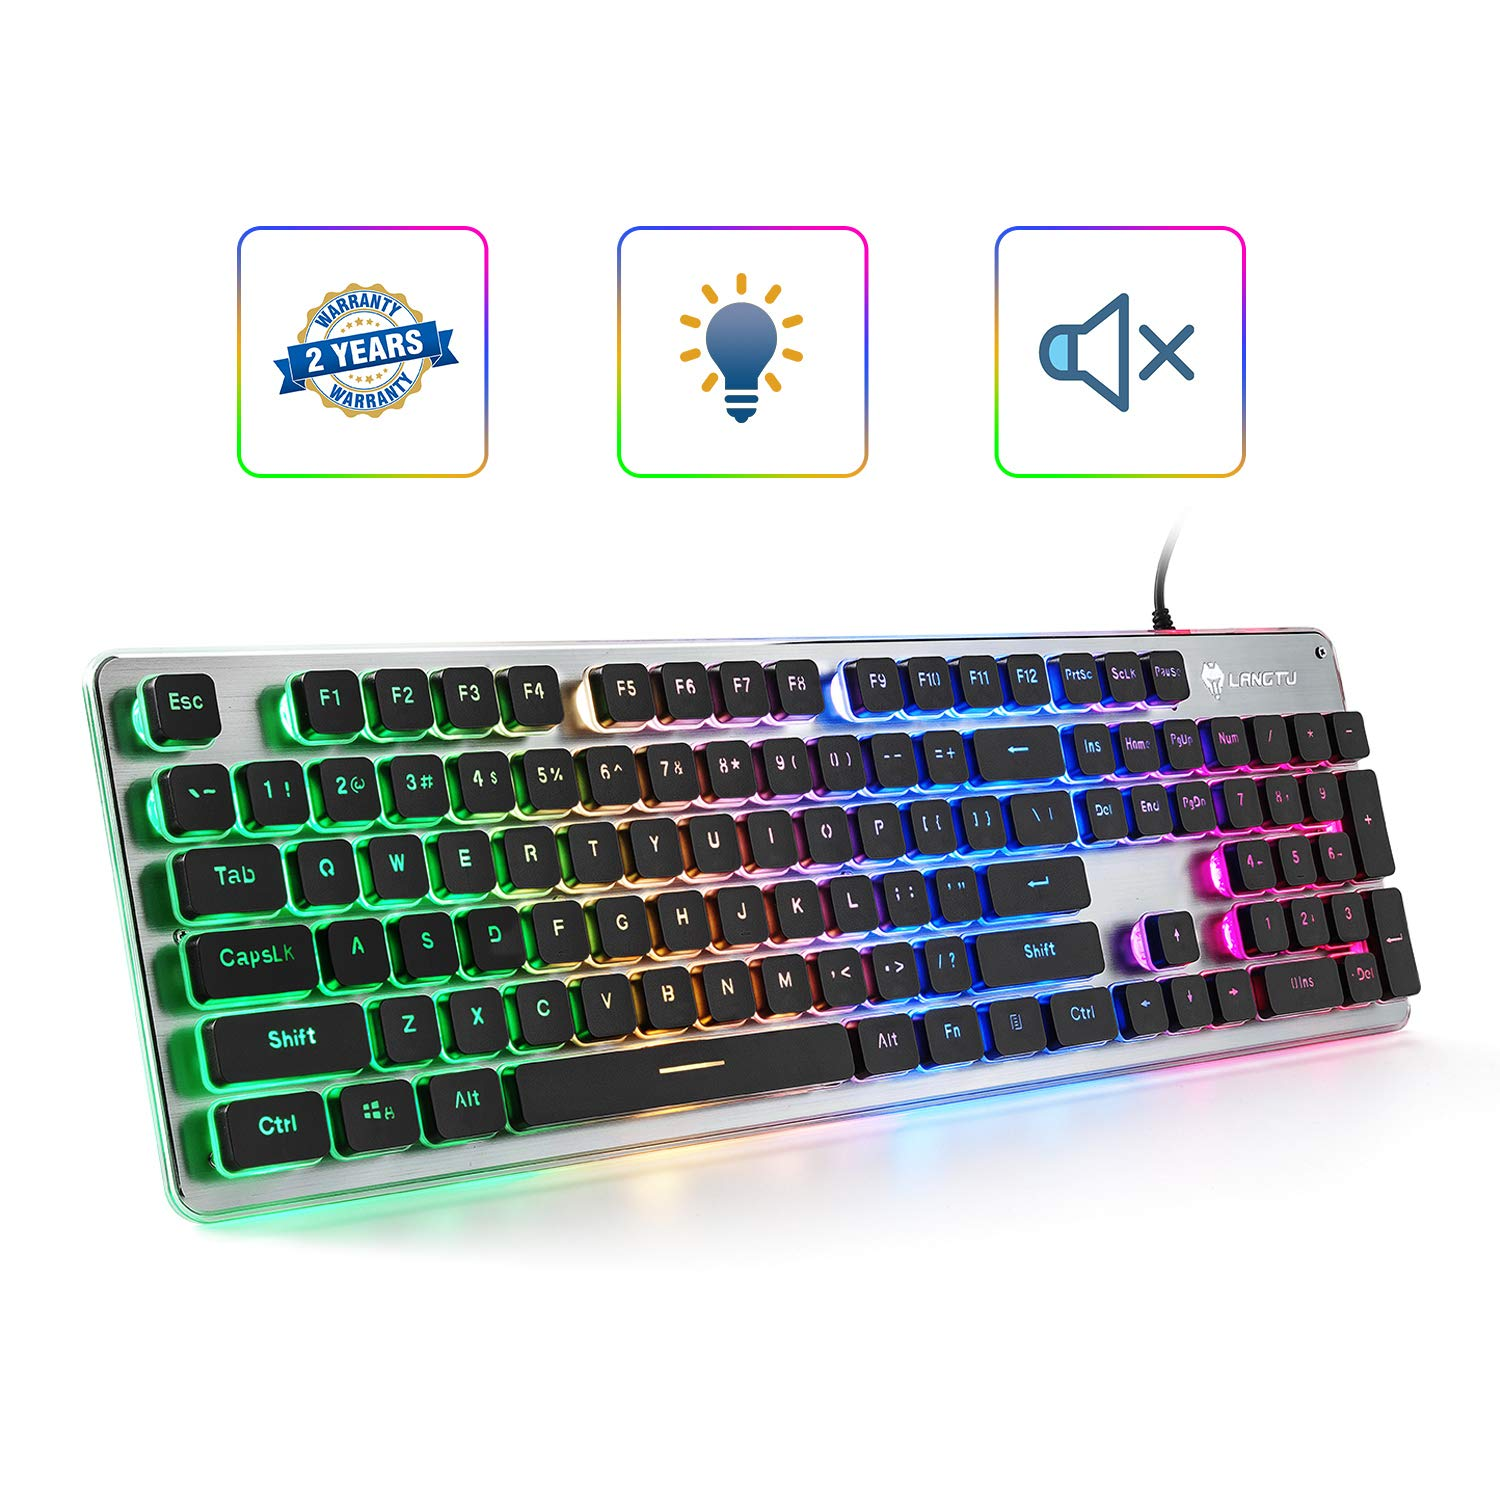 LANGTU Membrane Gaming Keyboard, Colorful LED Backlit Quiet Keyboard for Study, All-Metal Panel USB Wired 25 Keys Anti-ghosting Computer Keyboard 104 Keys – L1 Black Silver